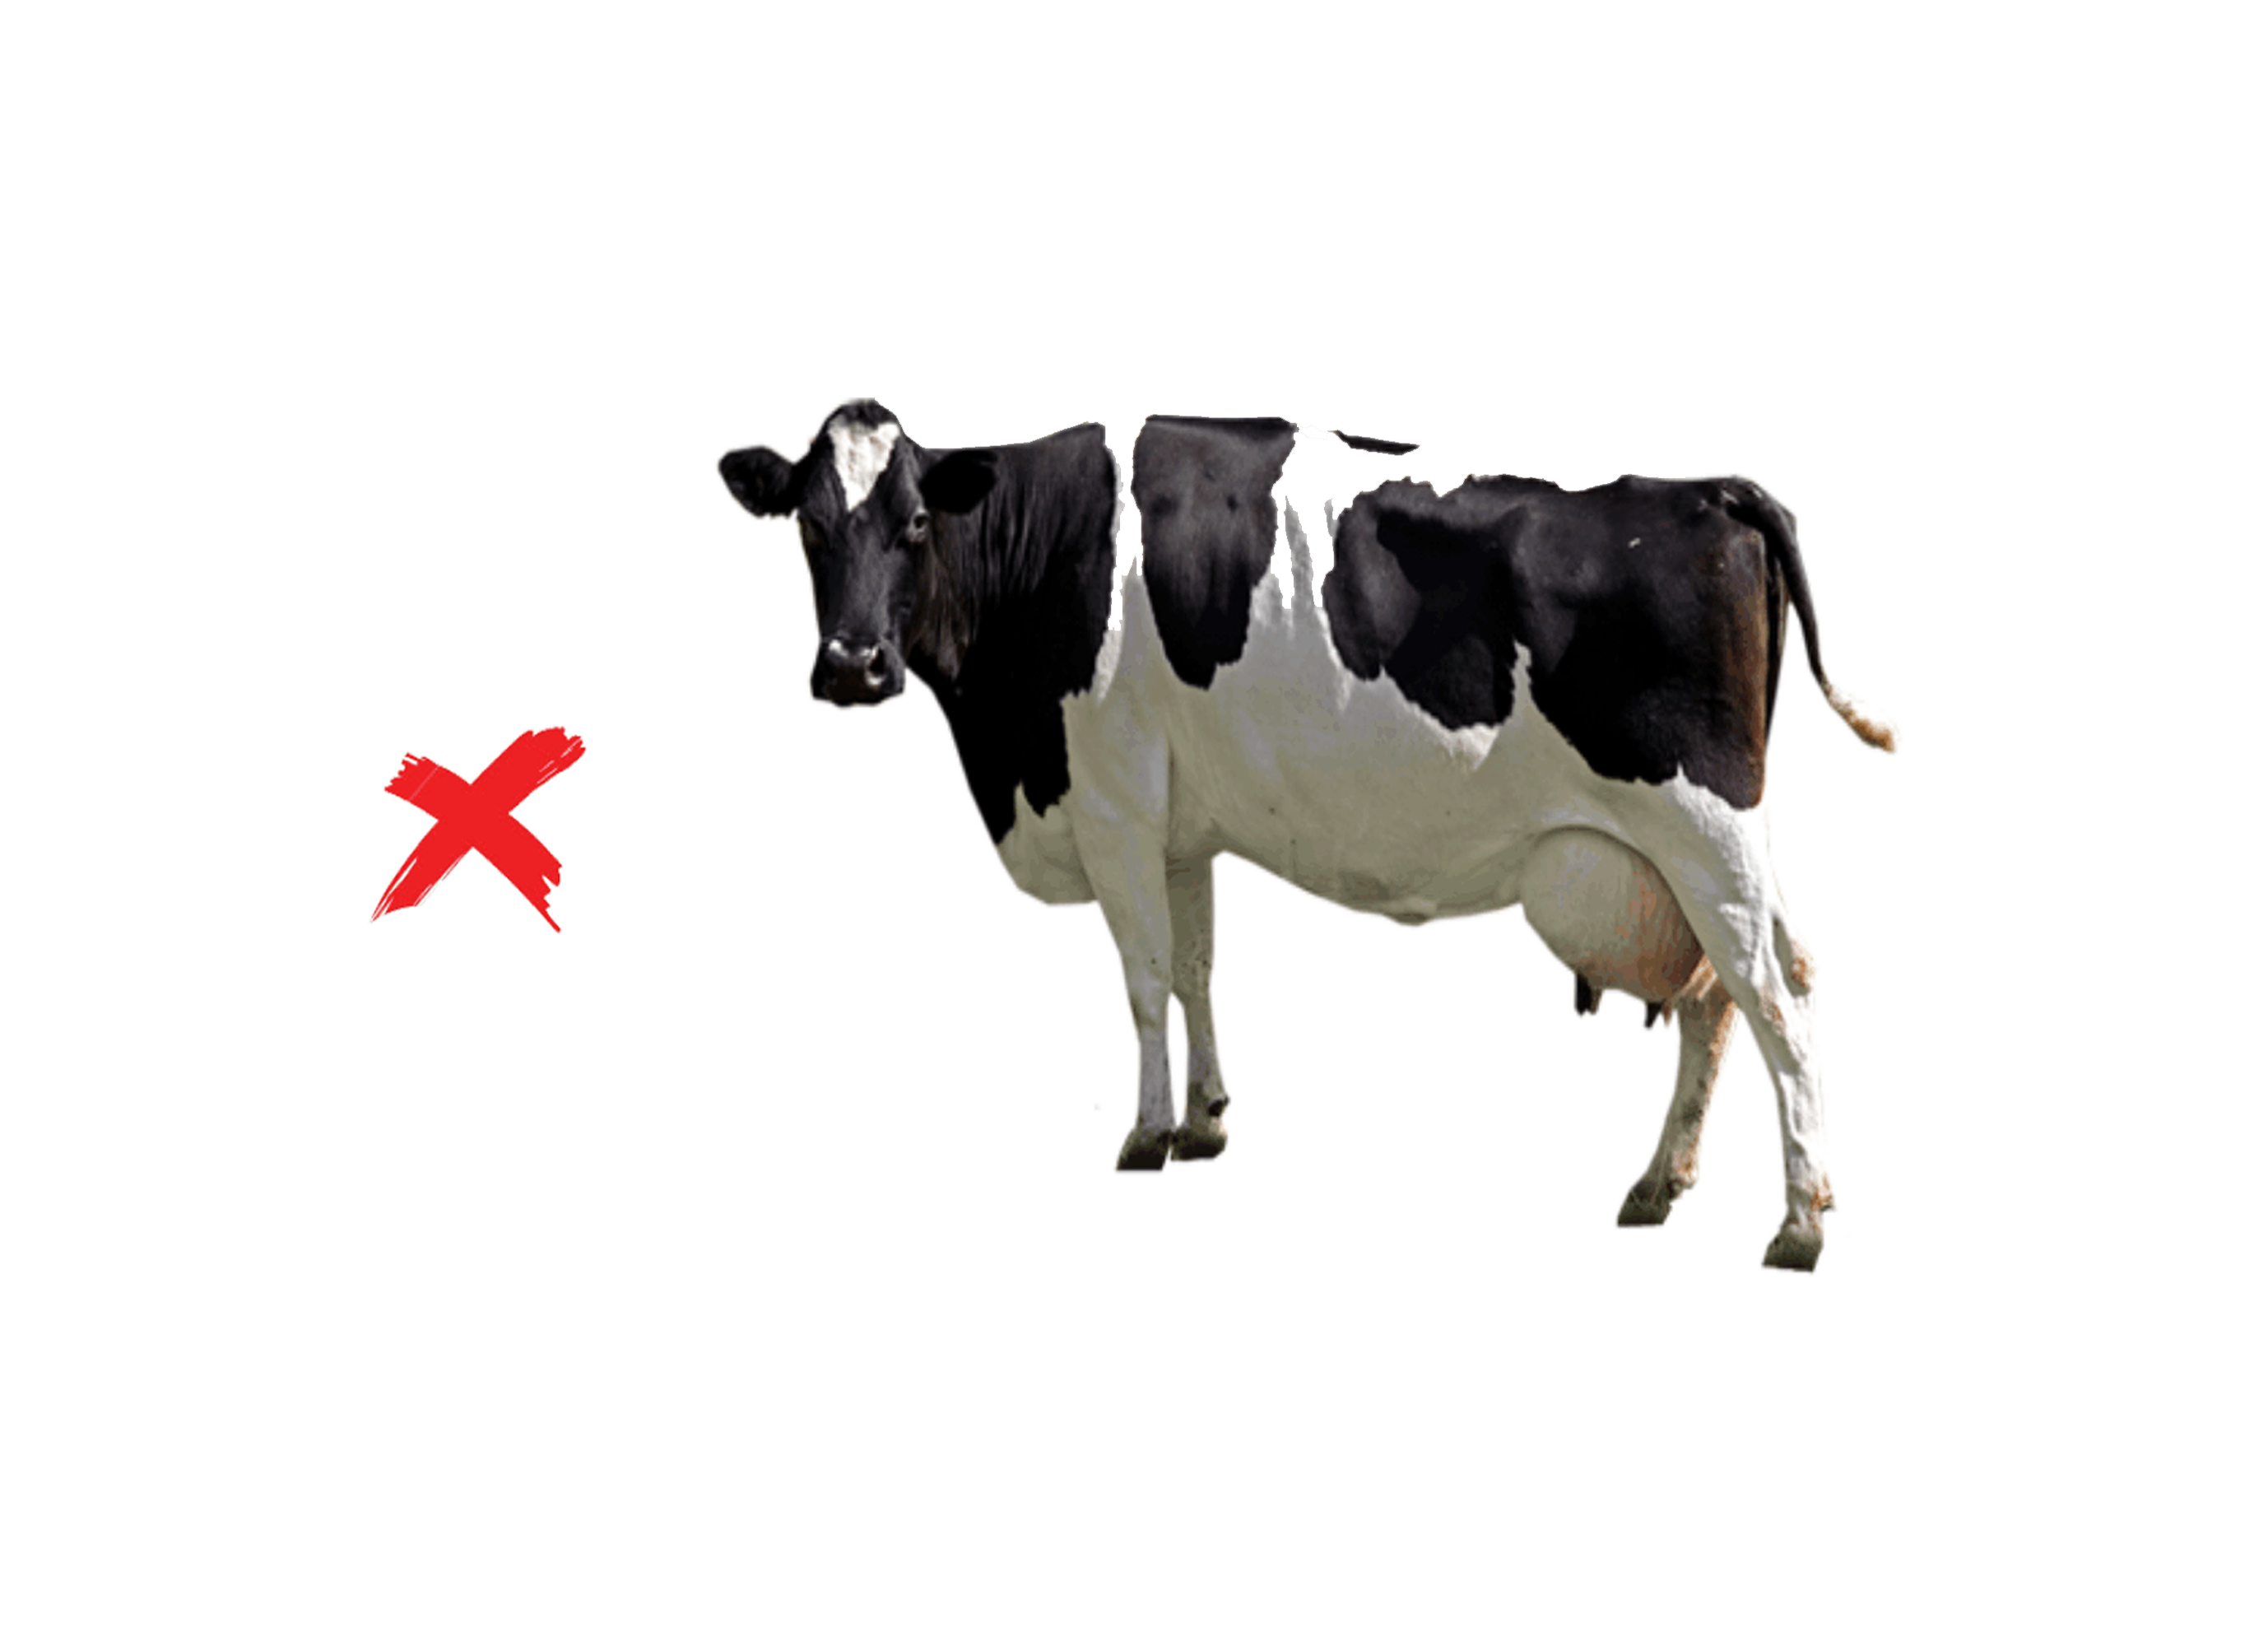 Vedik farms foreign breed. Cows clipart cow indian